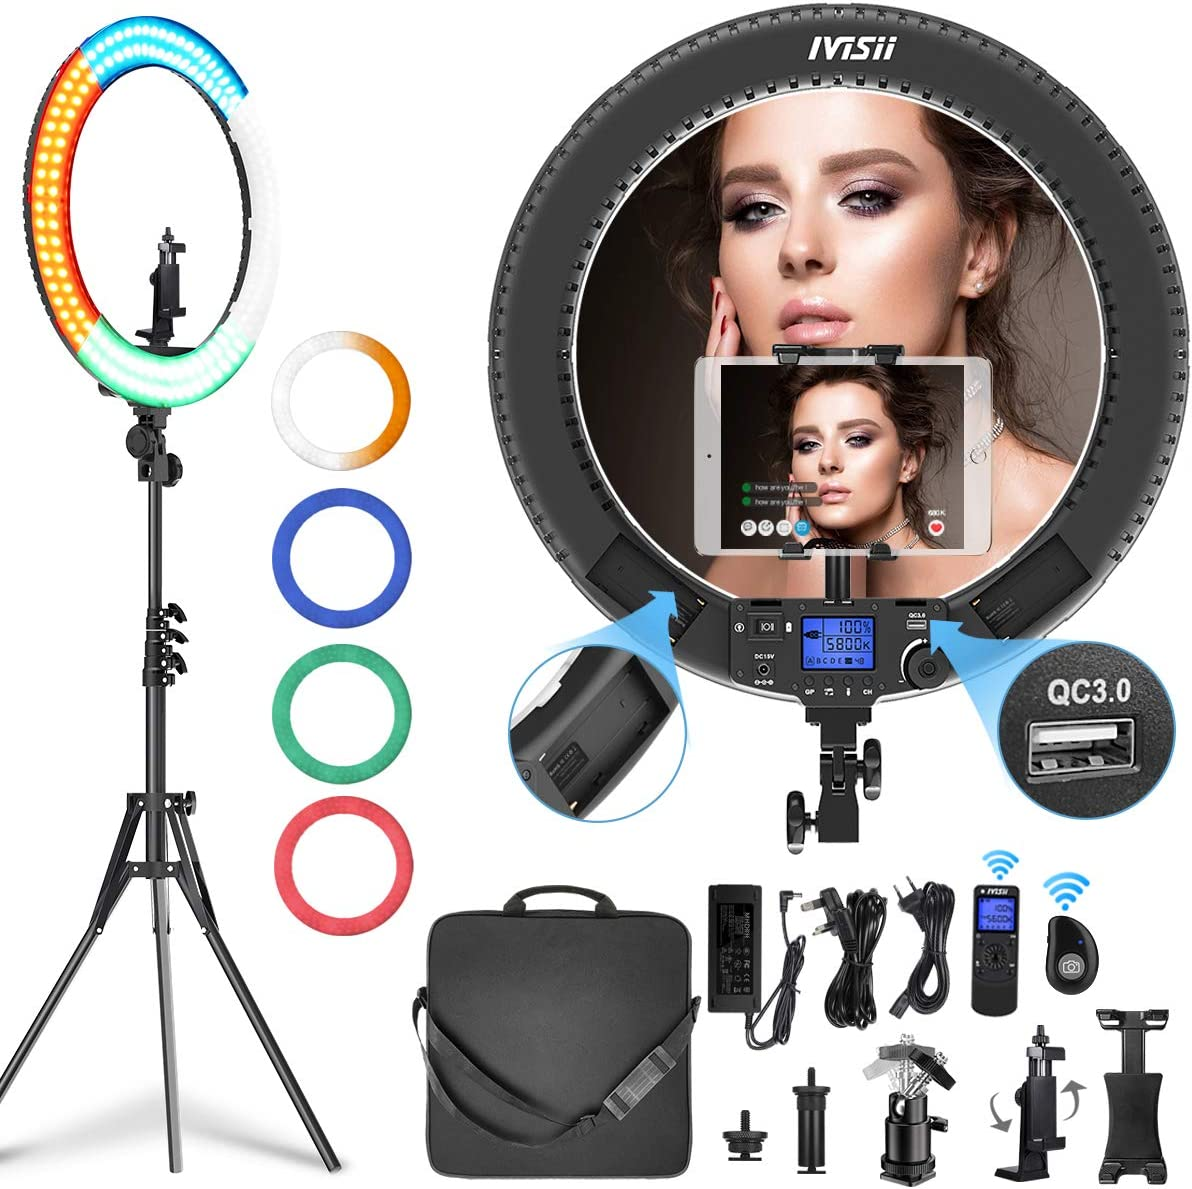 IVISII 19 inch Ring Light with Remote Controller and Stand ipad Holder, 60W Bi-Color with 4 Color Soft Filters for Live Stream/Makeup/YouTube Video/TikTok/Zoom/Photography : Camera & Photo